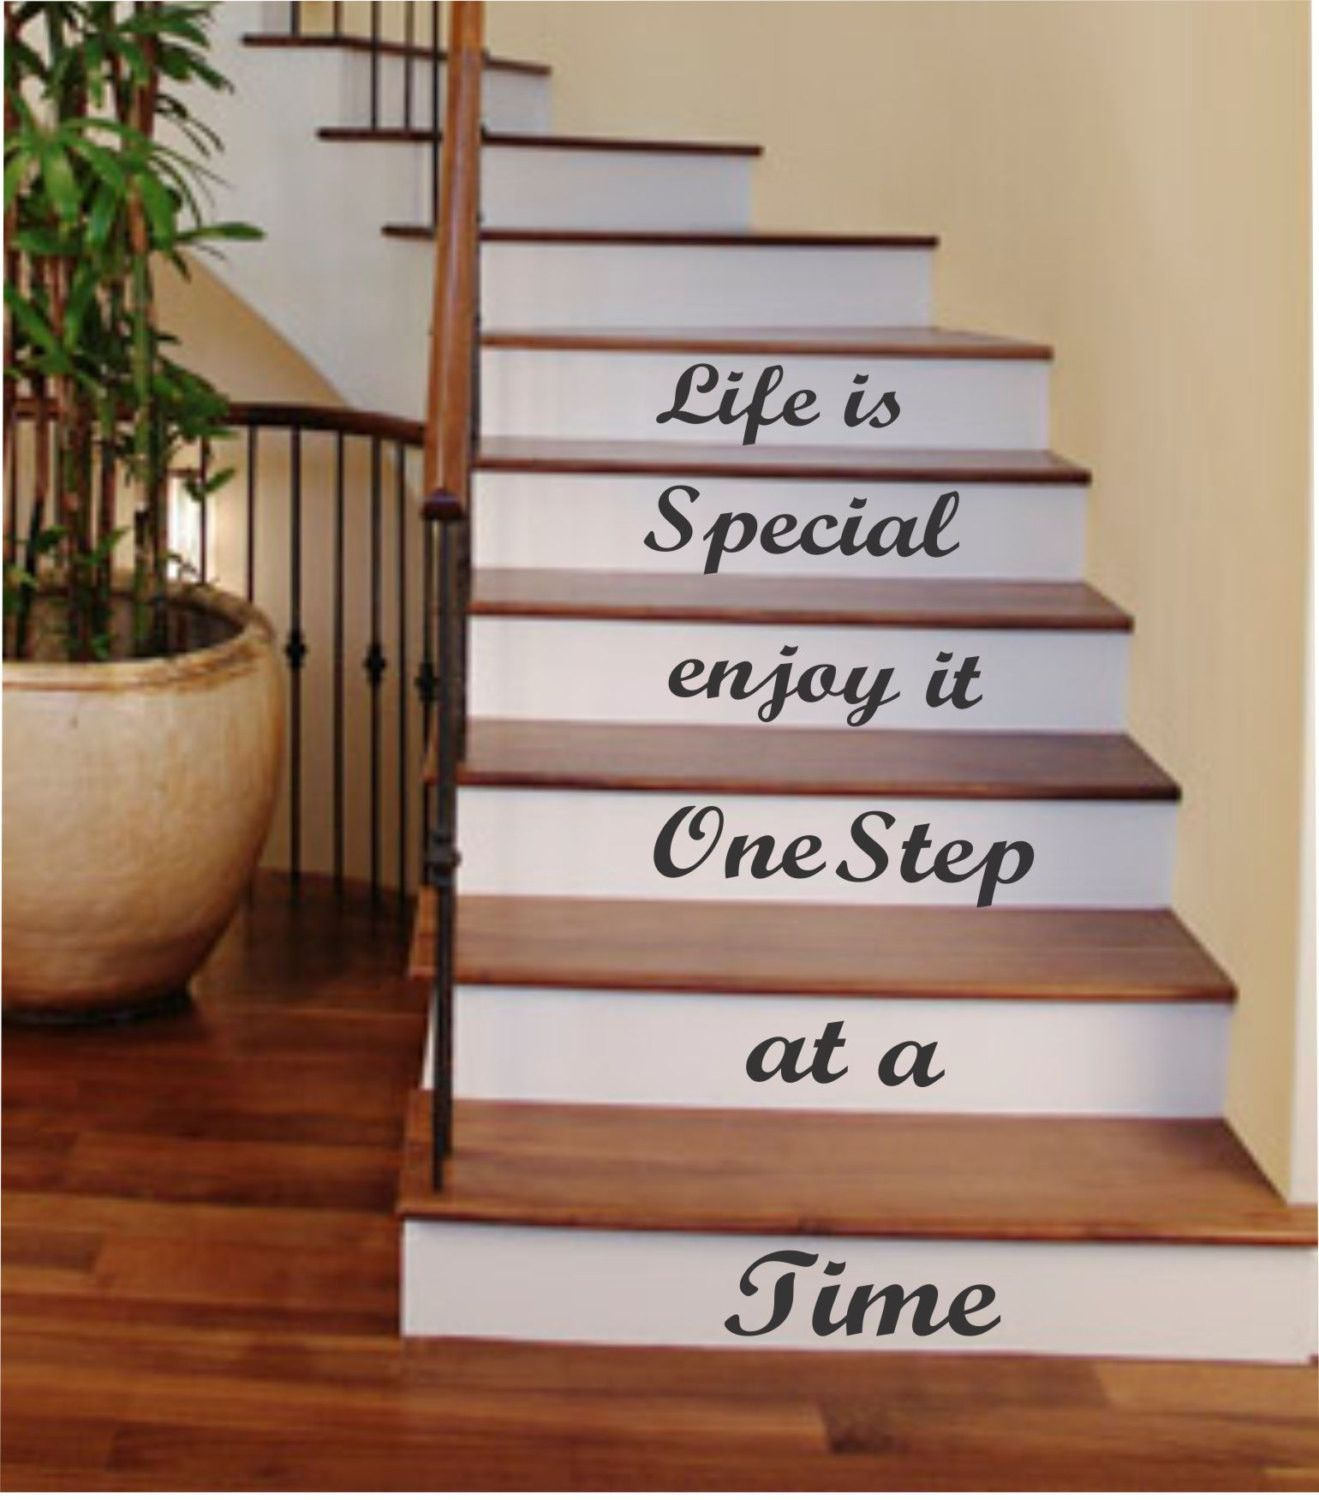 Vinyl Wall Lettering Life is Special Enjoy it e Step at a Time